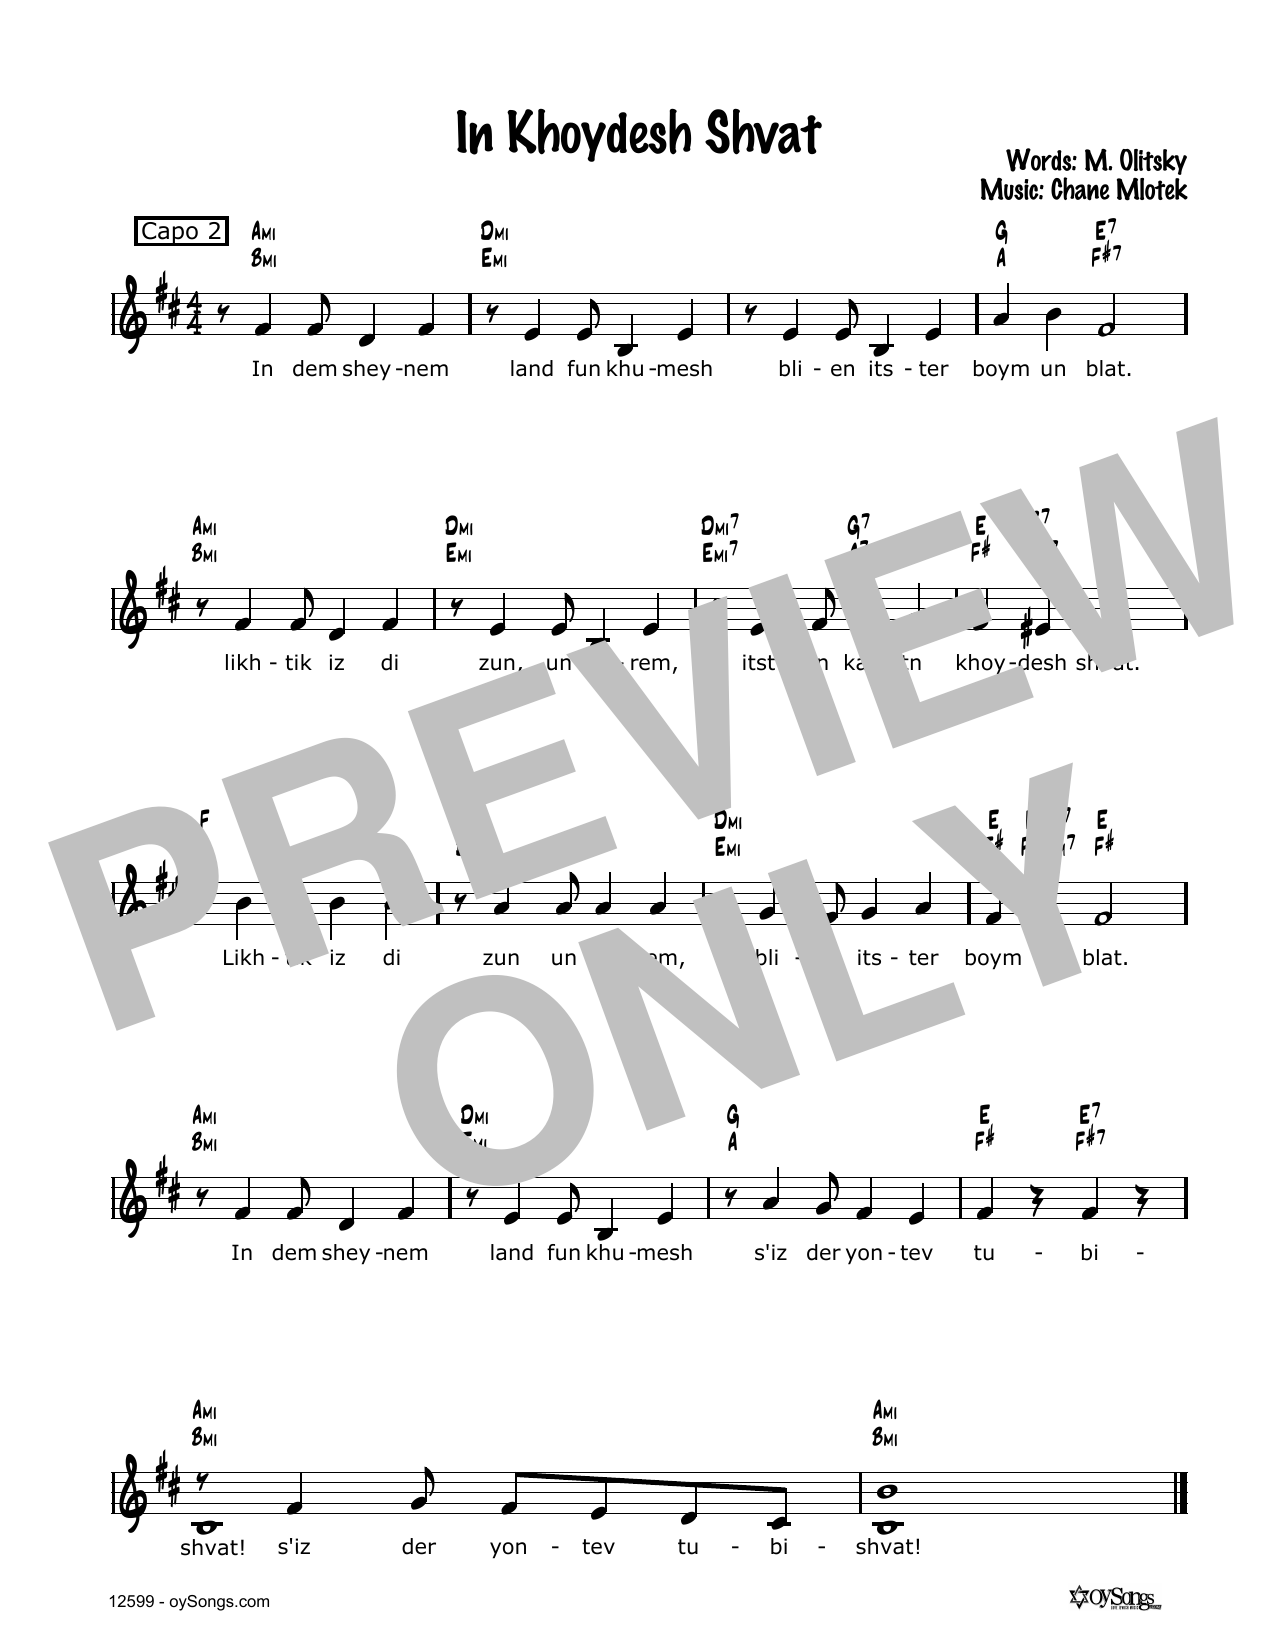 Cindy Paley In Khoydesh Shvat sheet music notes and chords. Download Printable PDF.